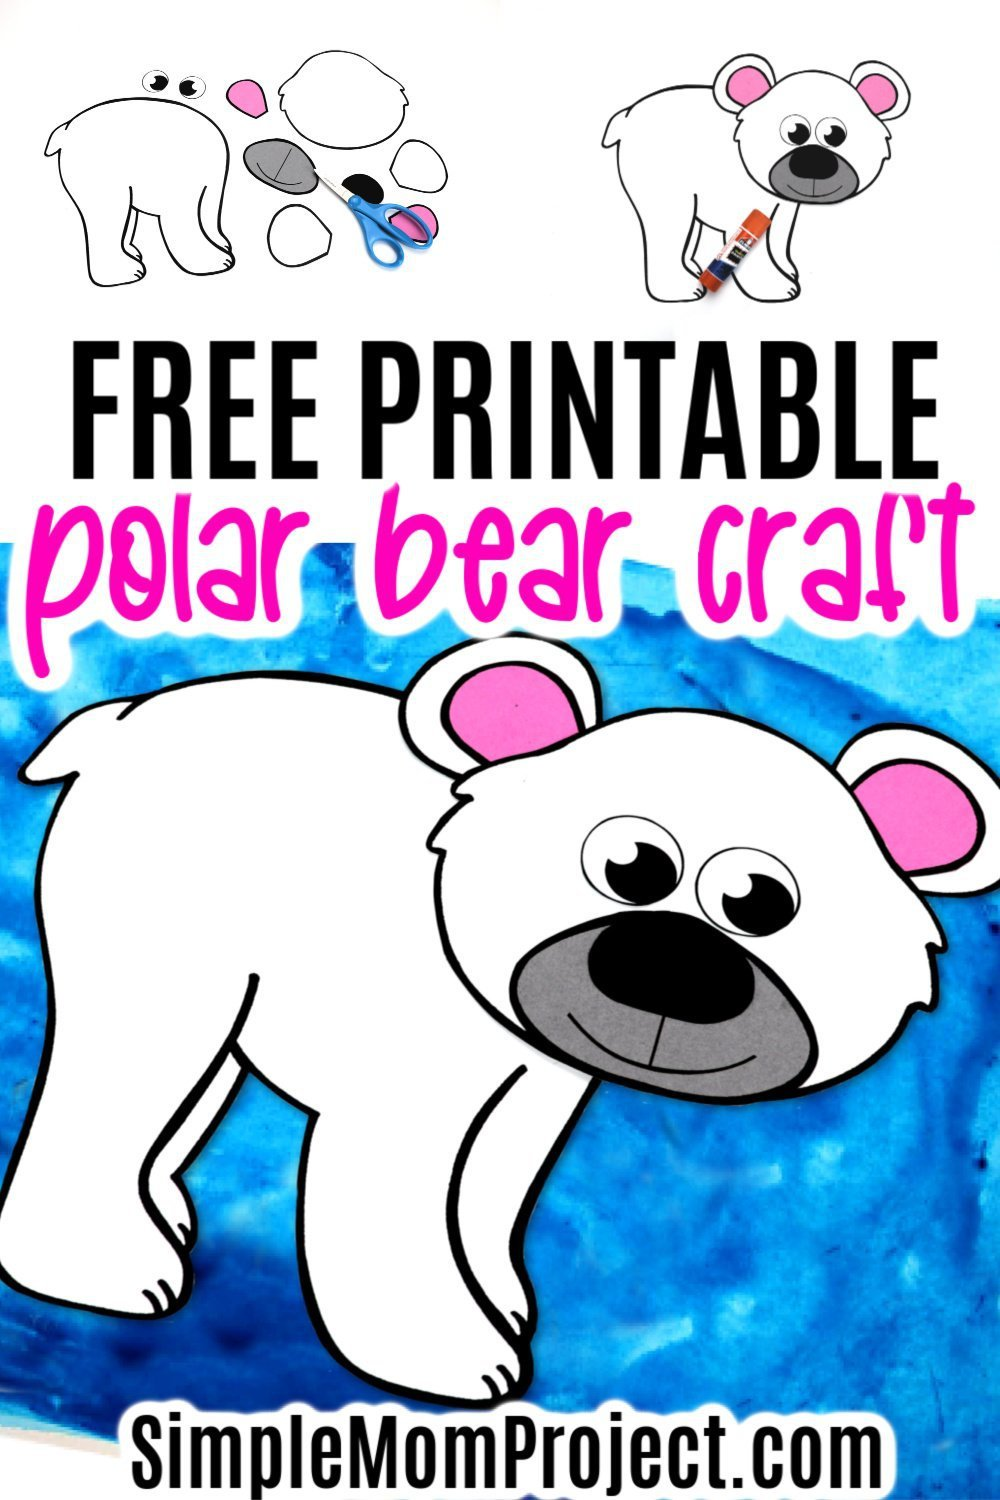 Looking for a fun and easy arctic animal craft idea to do with your preschooler this winter? Click to get this free printable polar bear template to make this cut out polar bear craft! With the step-by-step tutorial, this cute polar bear craft is perfect for kids of all ages, including preschoolers, toddlers and kindergartners! #polarbears #polarbearcrafts #arcticanimals #arcticanimalcrafts